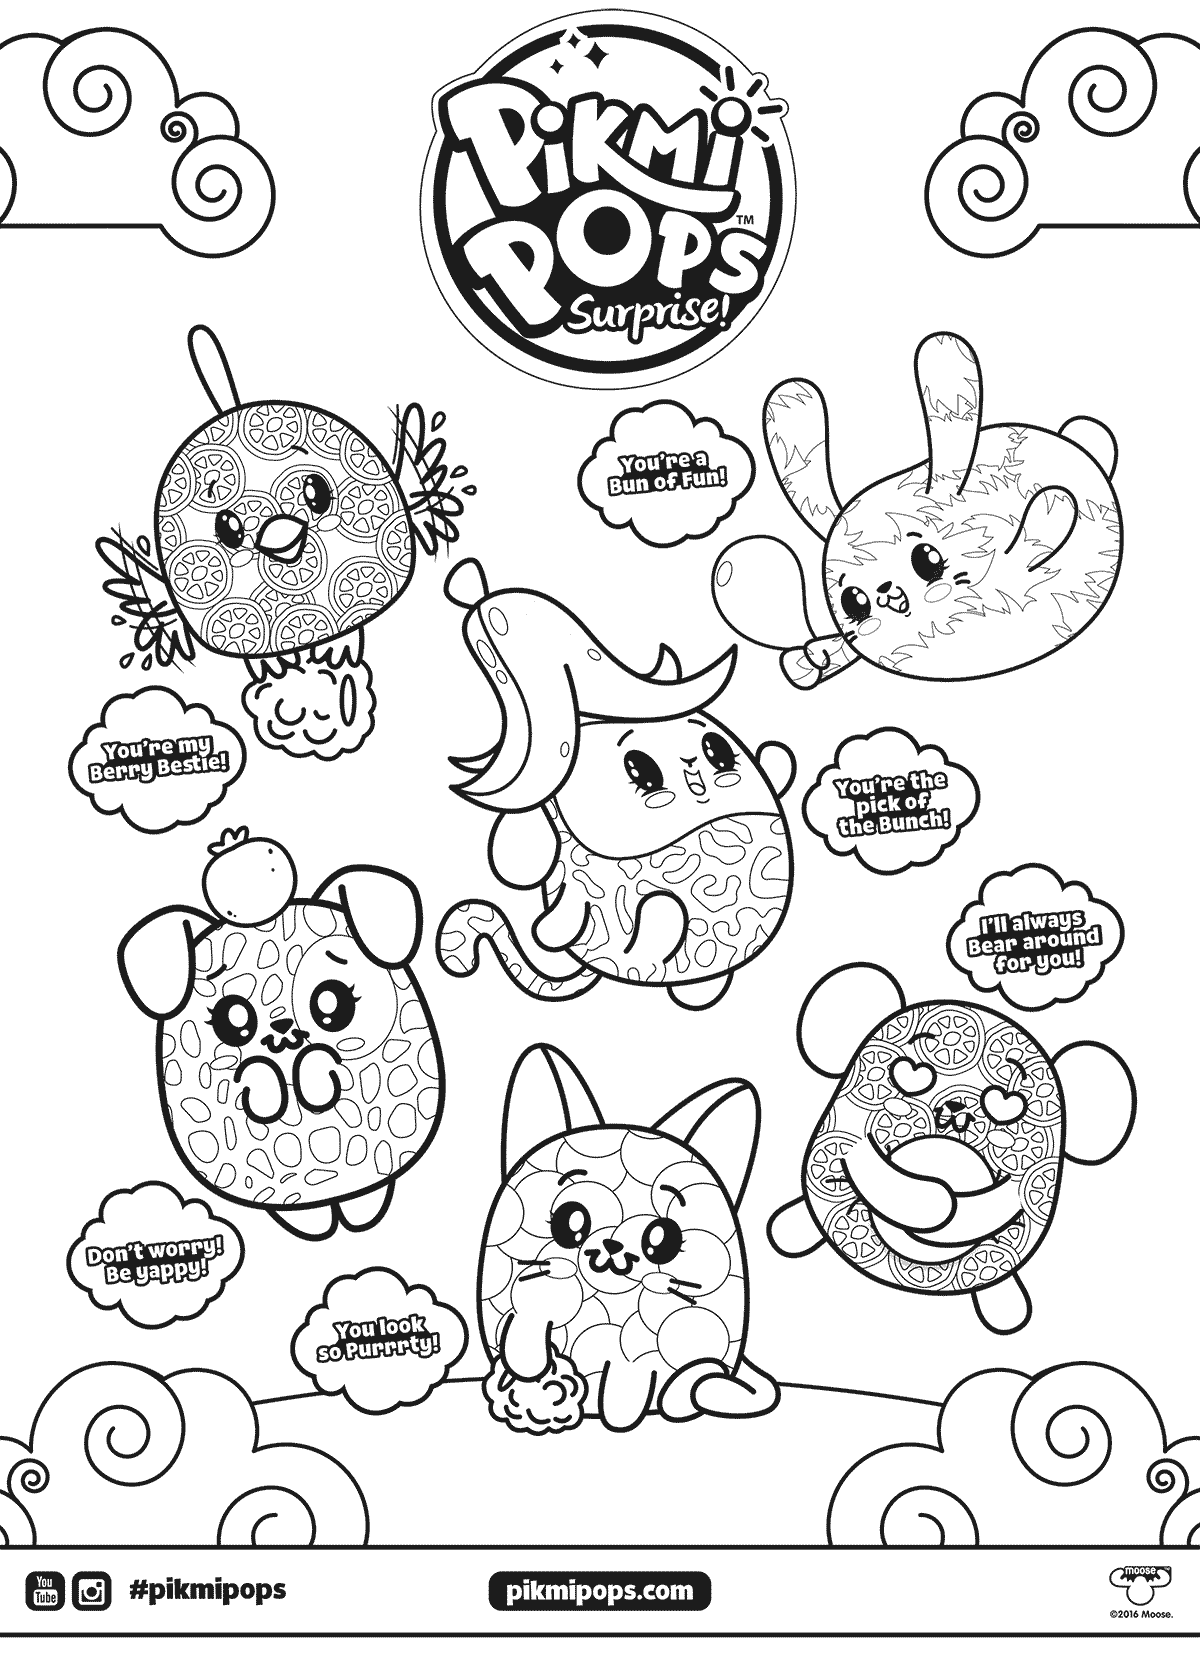 Pikmi Pops Surprise Coloring Page